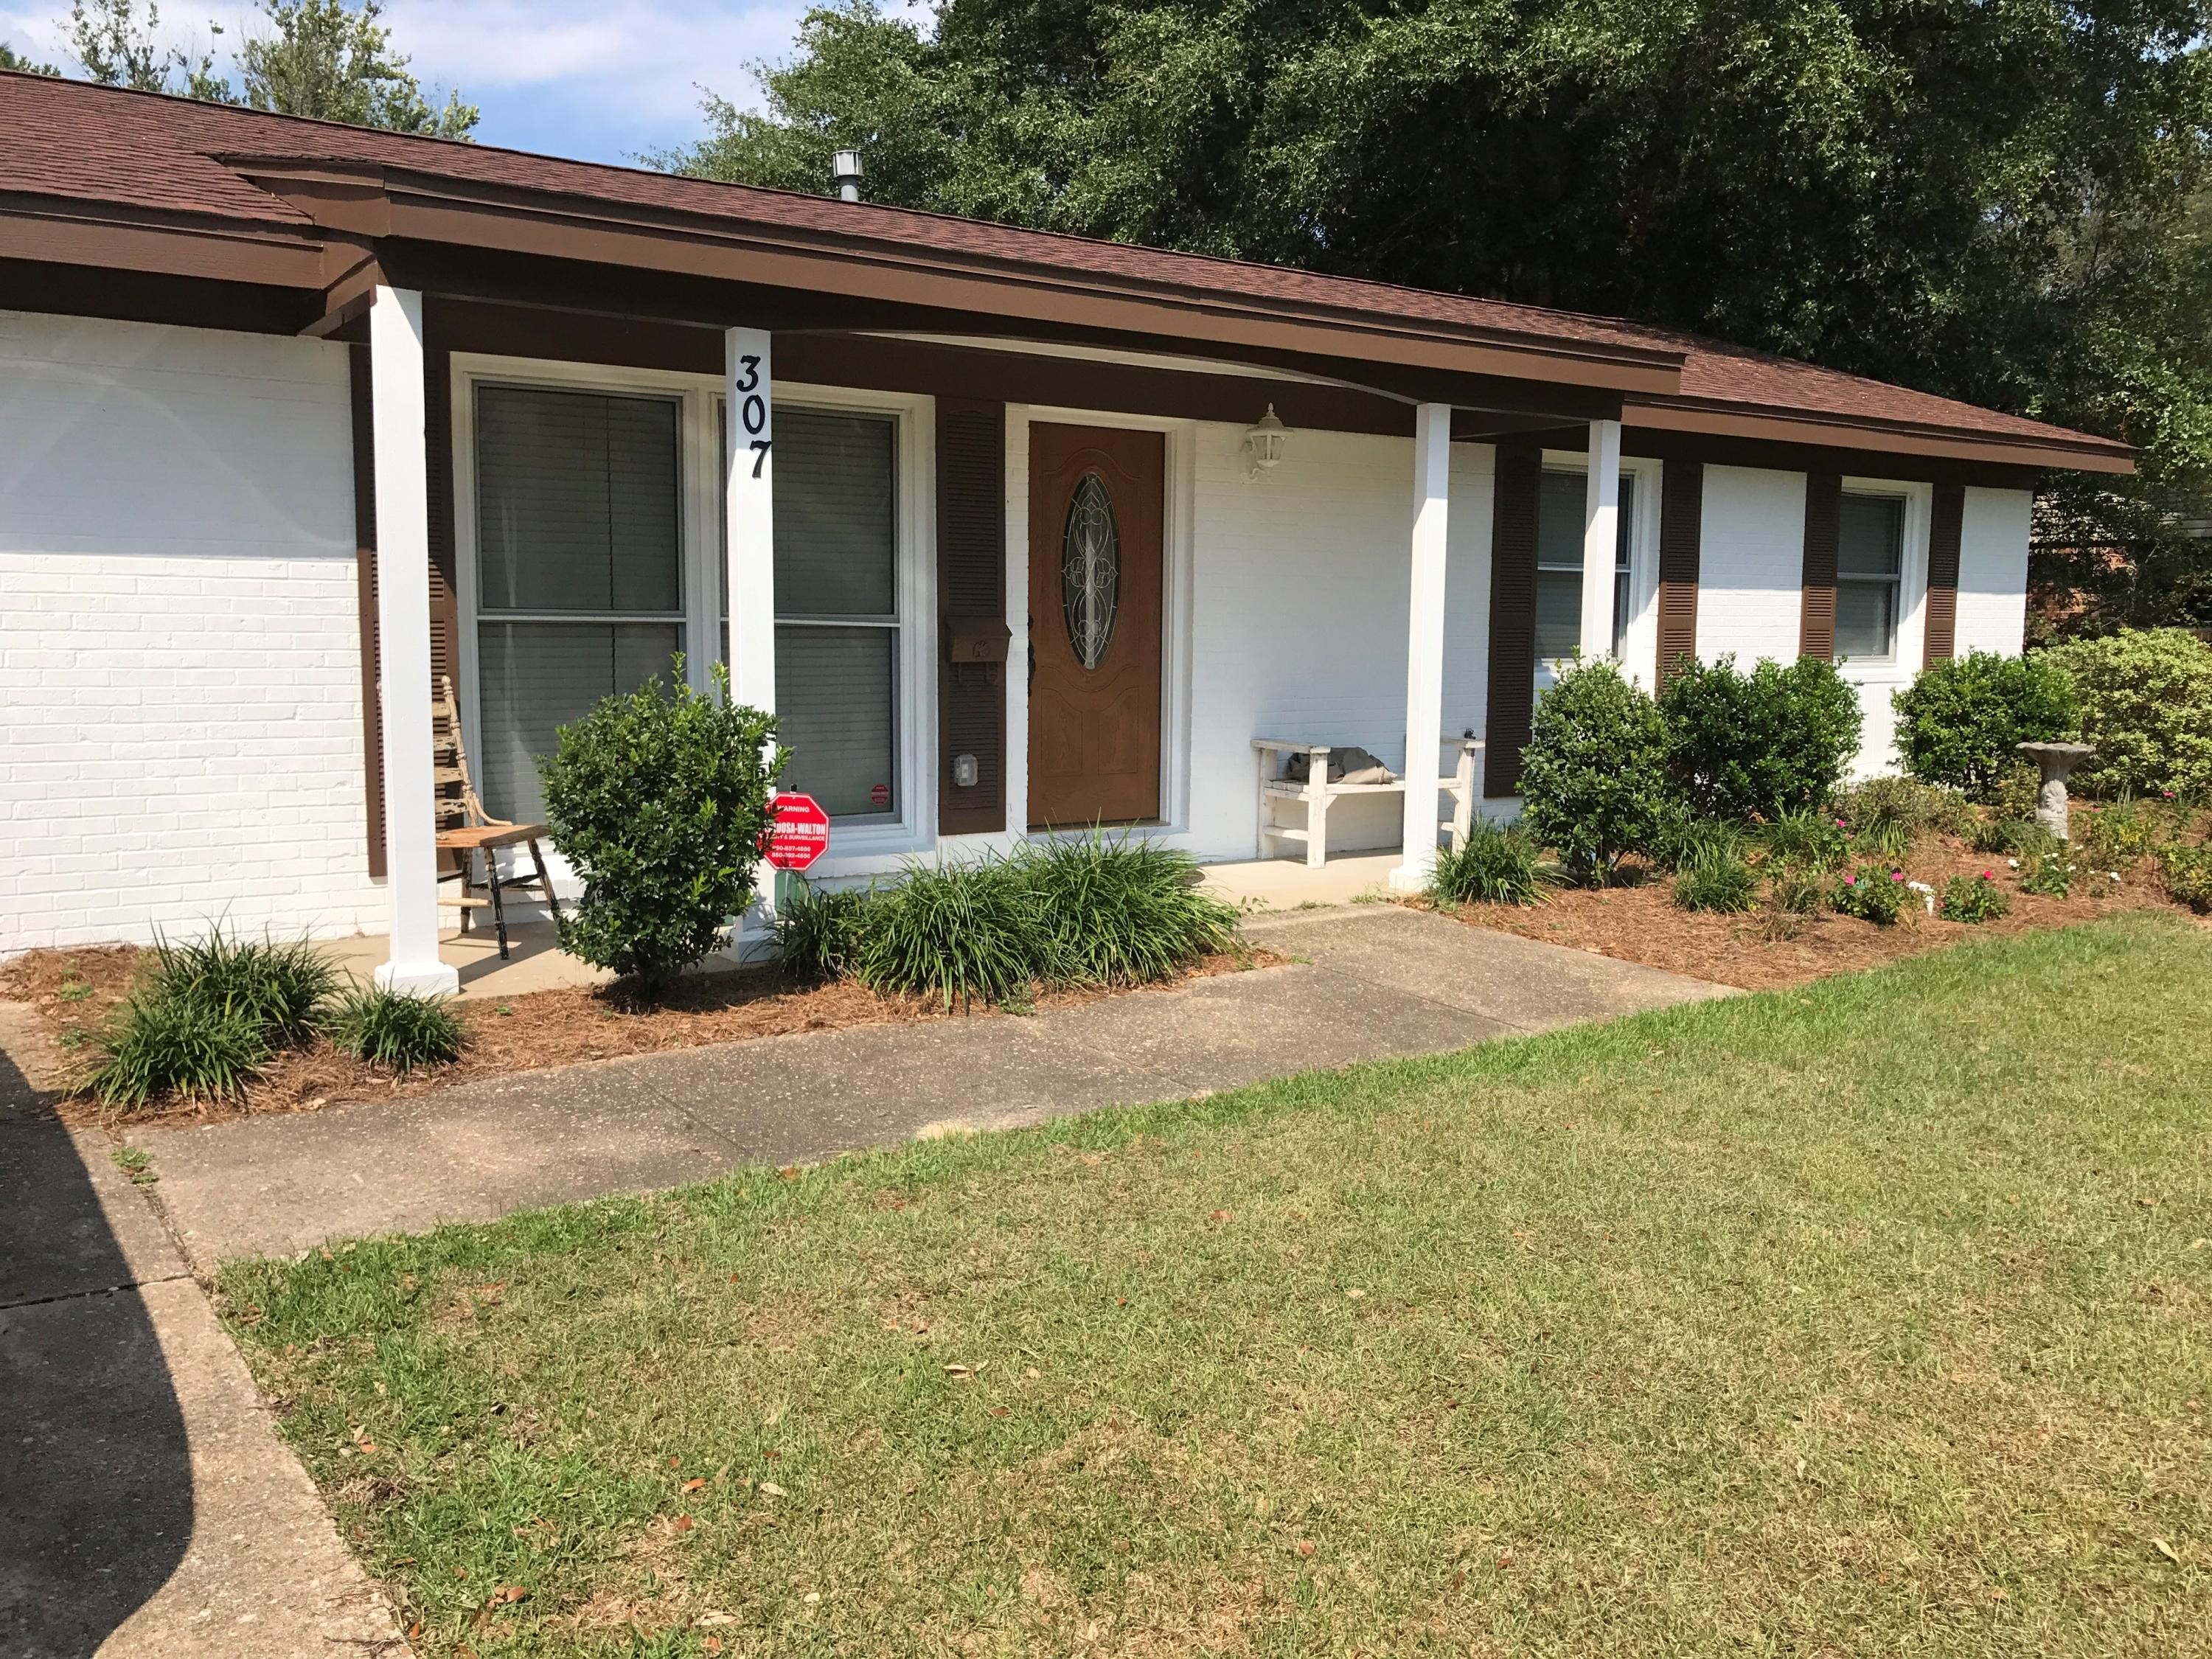 Photo of home for sale at 307 21st, Niceville FL